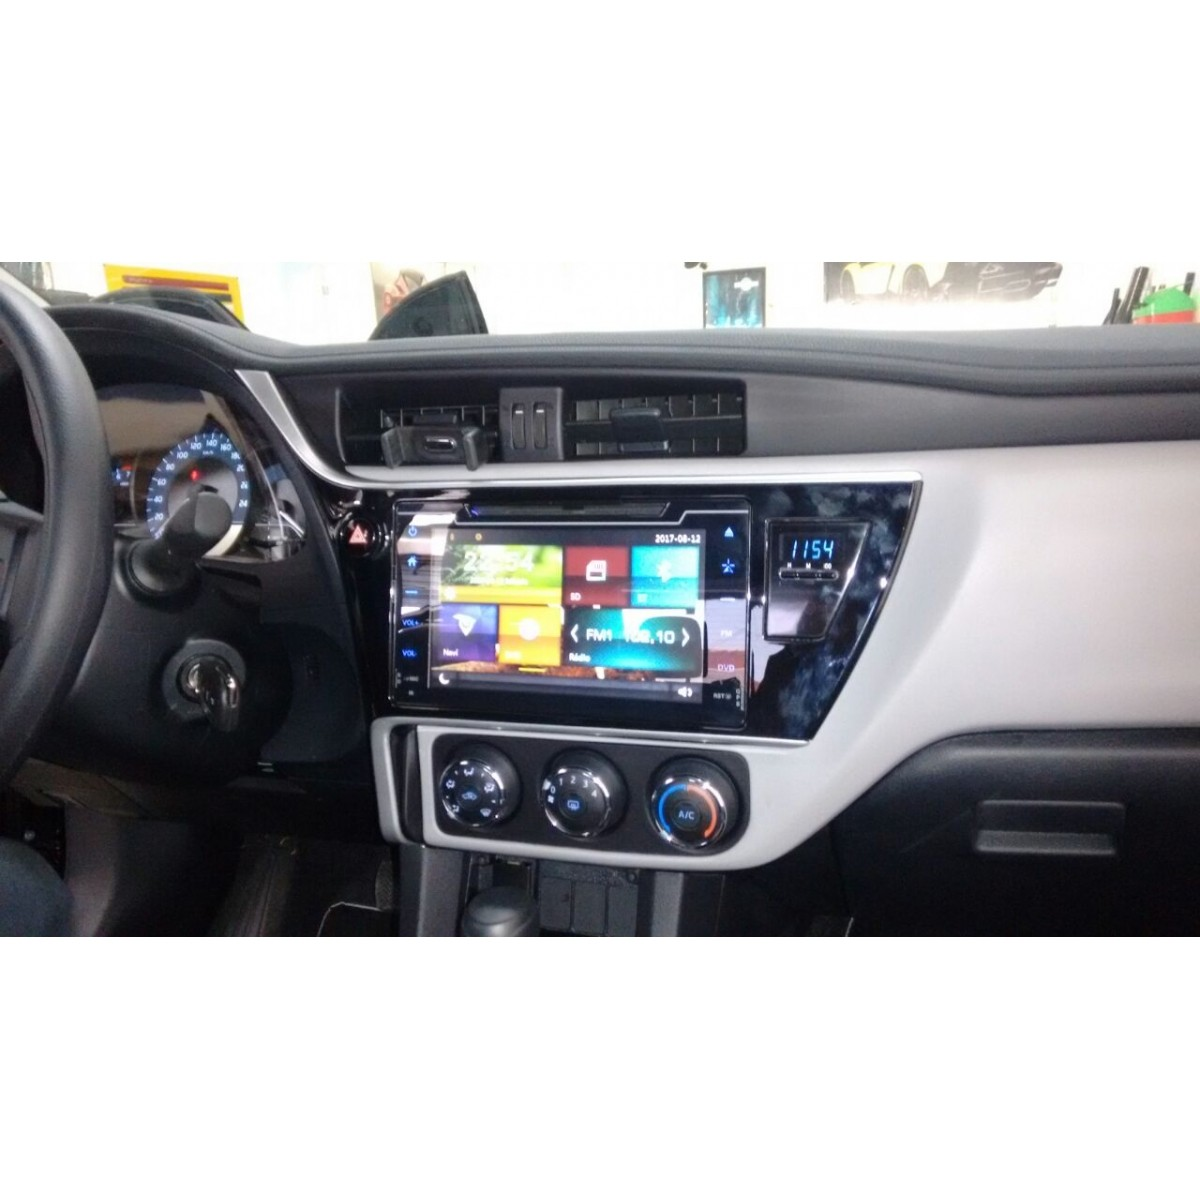 "Central Multimidia Toyota Corolla 2017 / 2019 GLI  - TELA 10""  Camera de ré Espelhamento DVD GPS Mapa Bluetooth MP3 USB Ipod SD Card Câmera Ré Grátis -  HETZER"